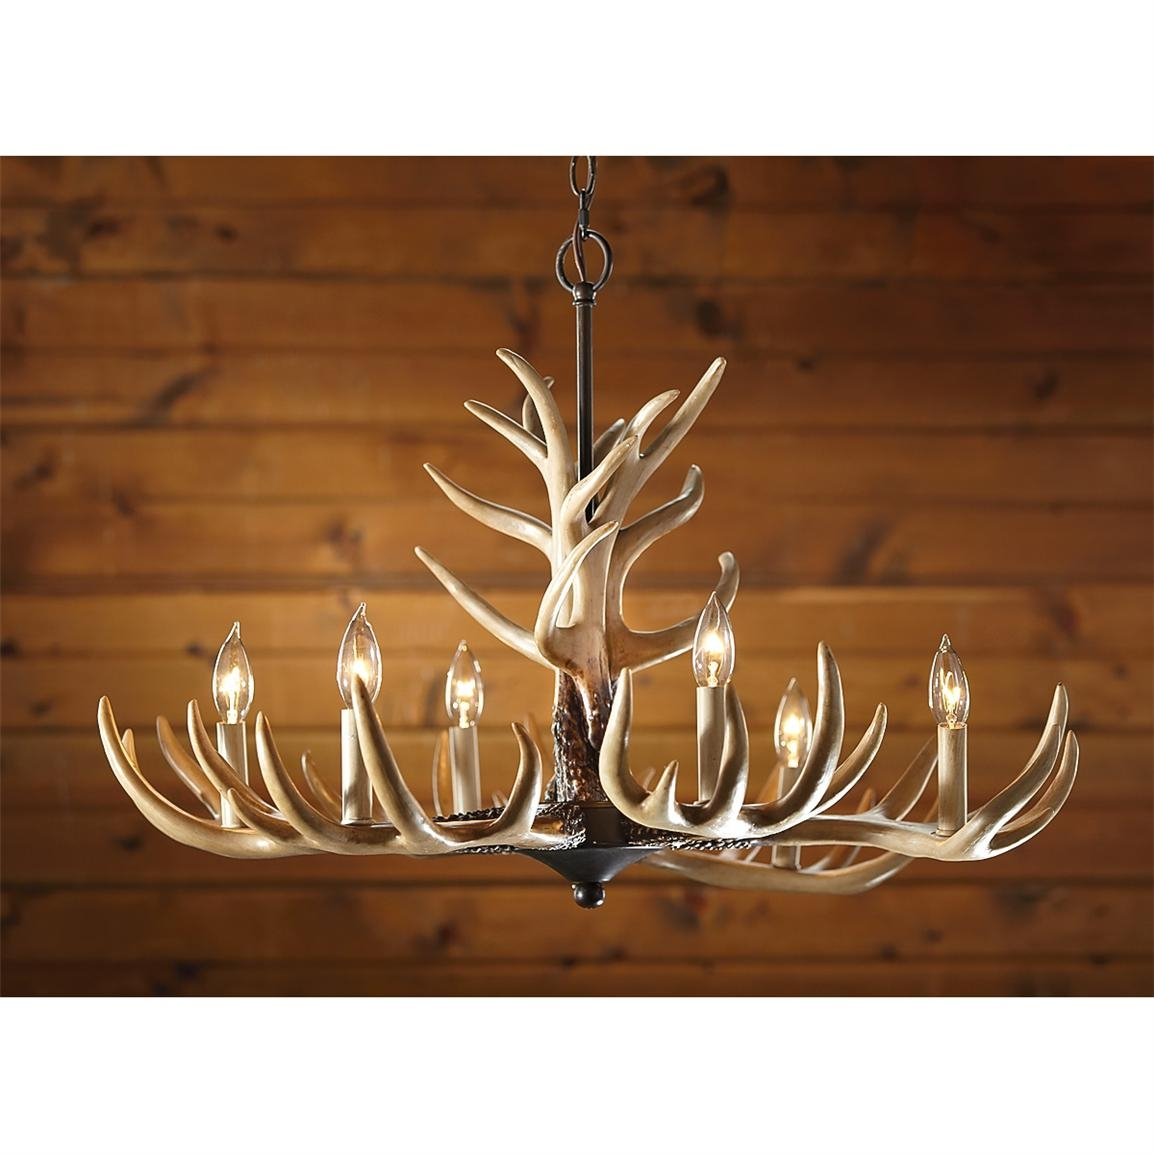 6 Light Antler Chandelier 210035 Lighting At Sportsmans Guide With Regard To Antler Chandeliers (Image 2 of 15)